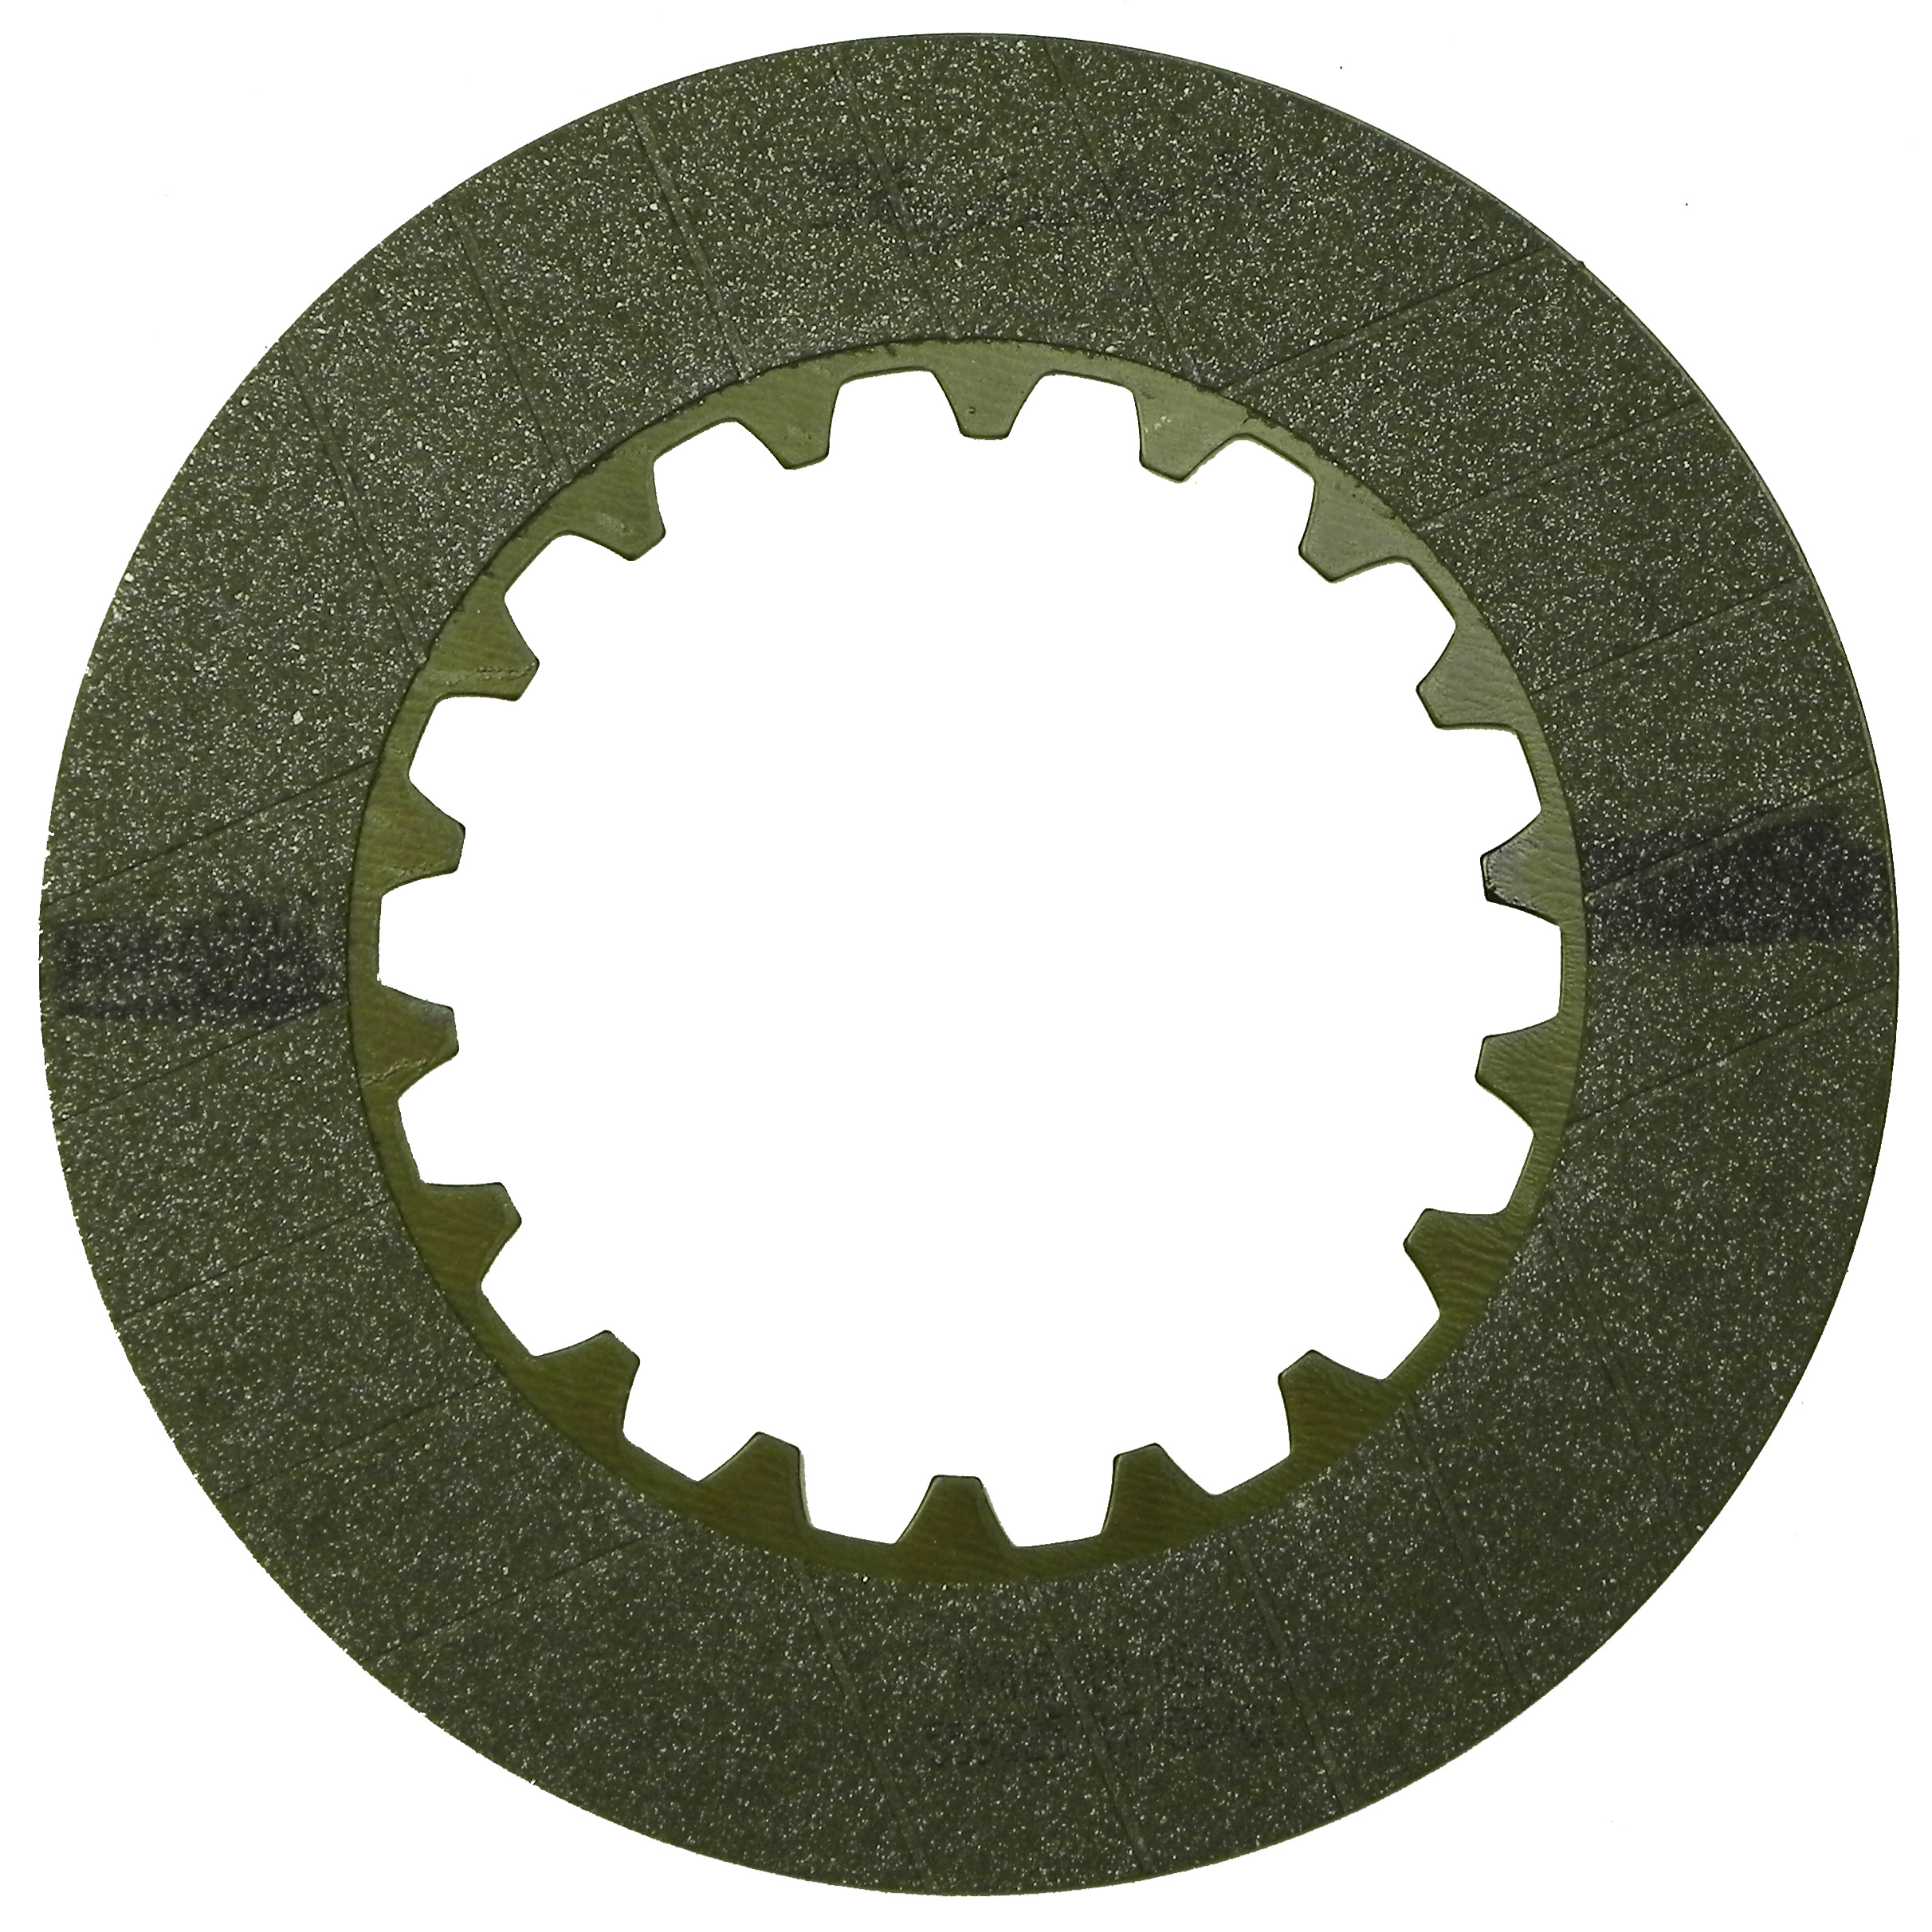 R559525 | 1983-1990 Friction Clutch Plate Graphitic 4th (4T60) Graphitic, 1 Stripe